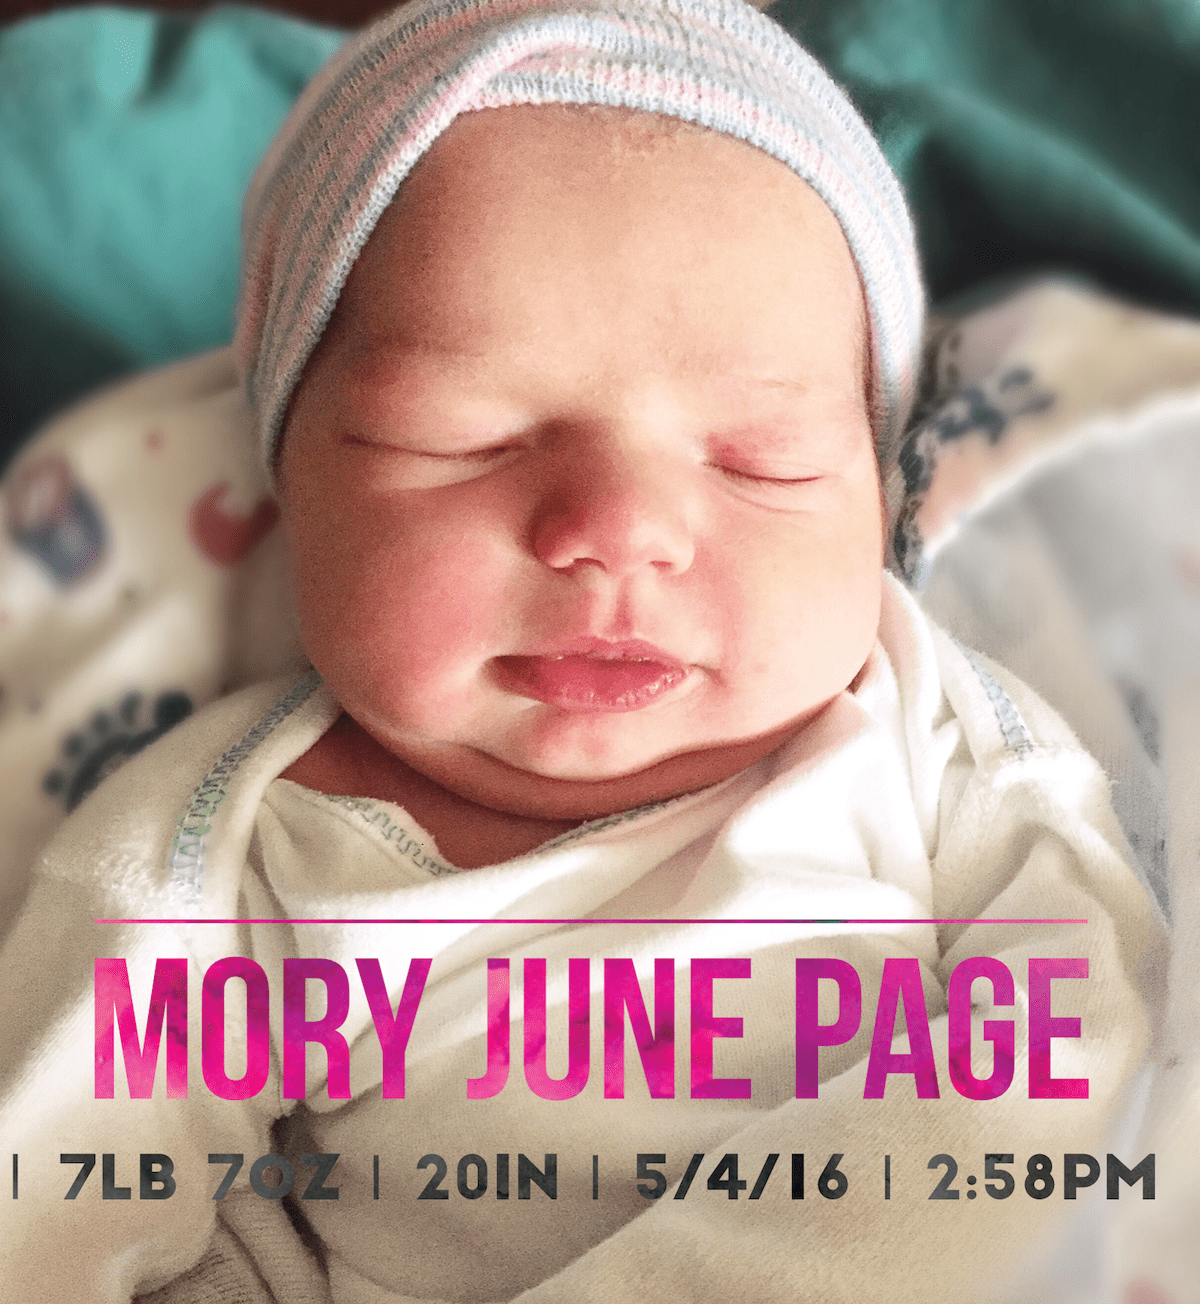 Mory June Page